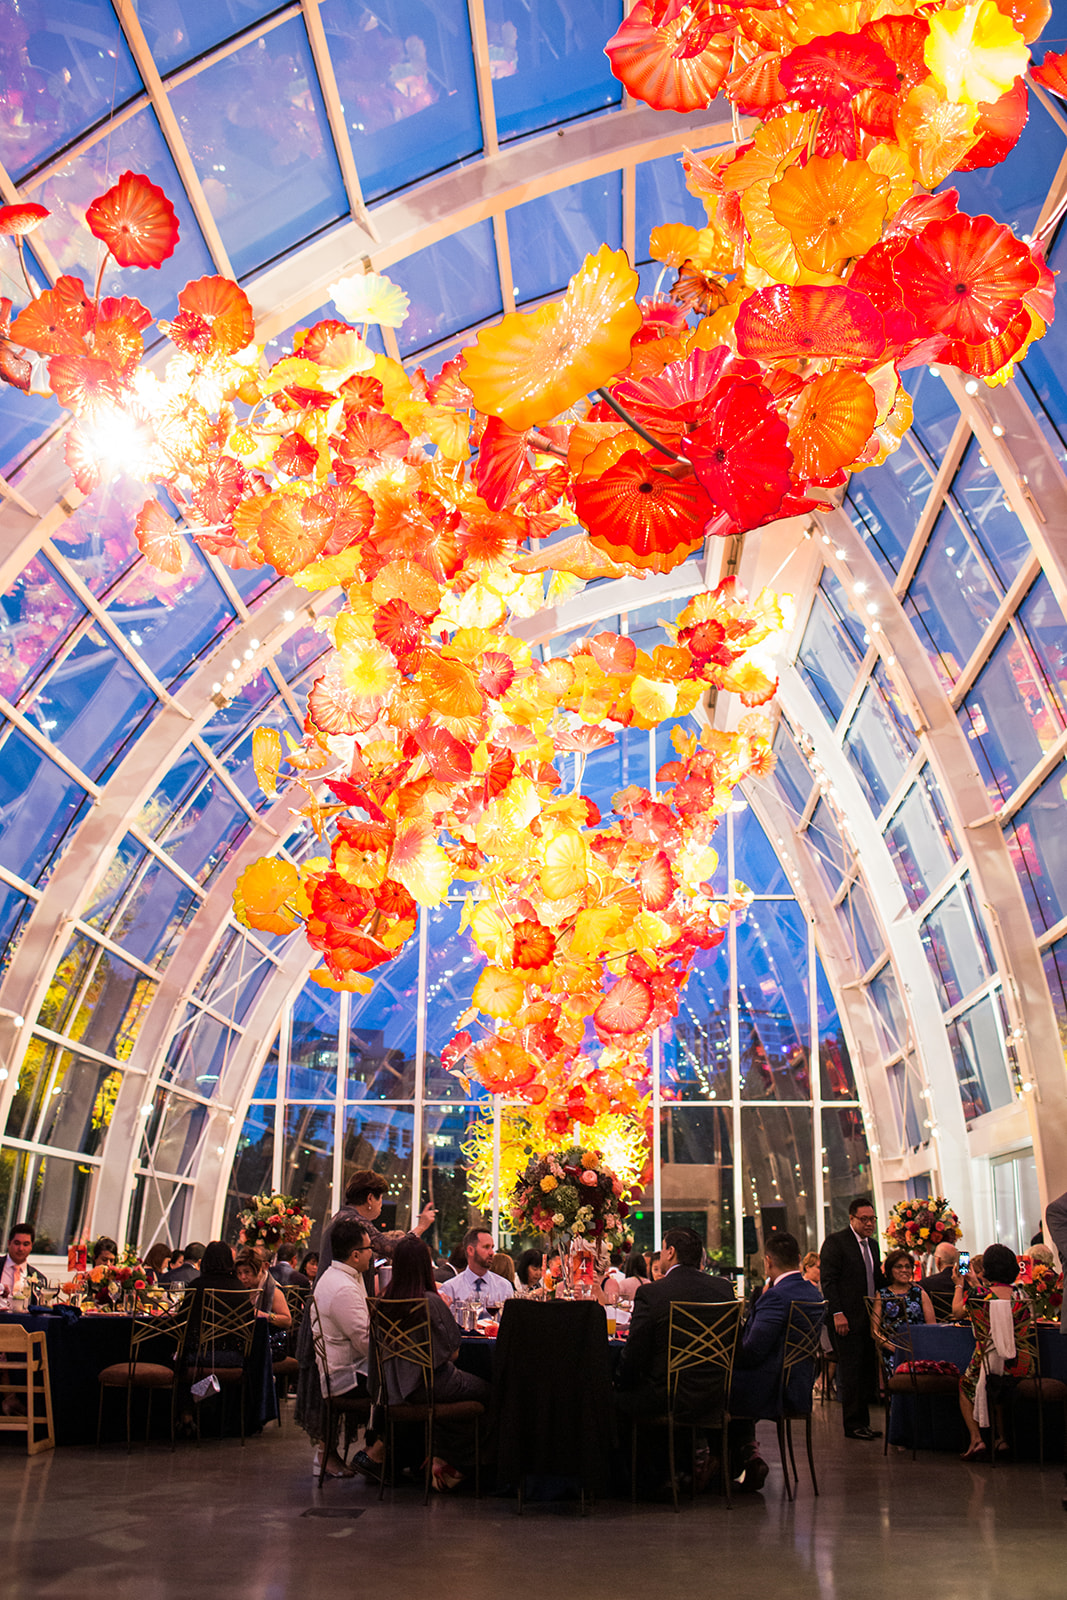 Burnt orange and navy blue evening at a fall wedding reception in the Chilhuly glass house